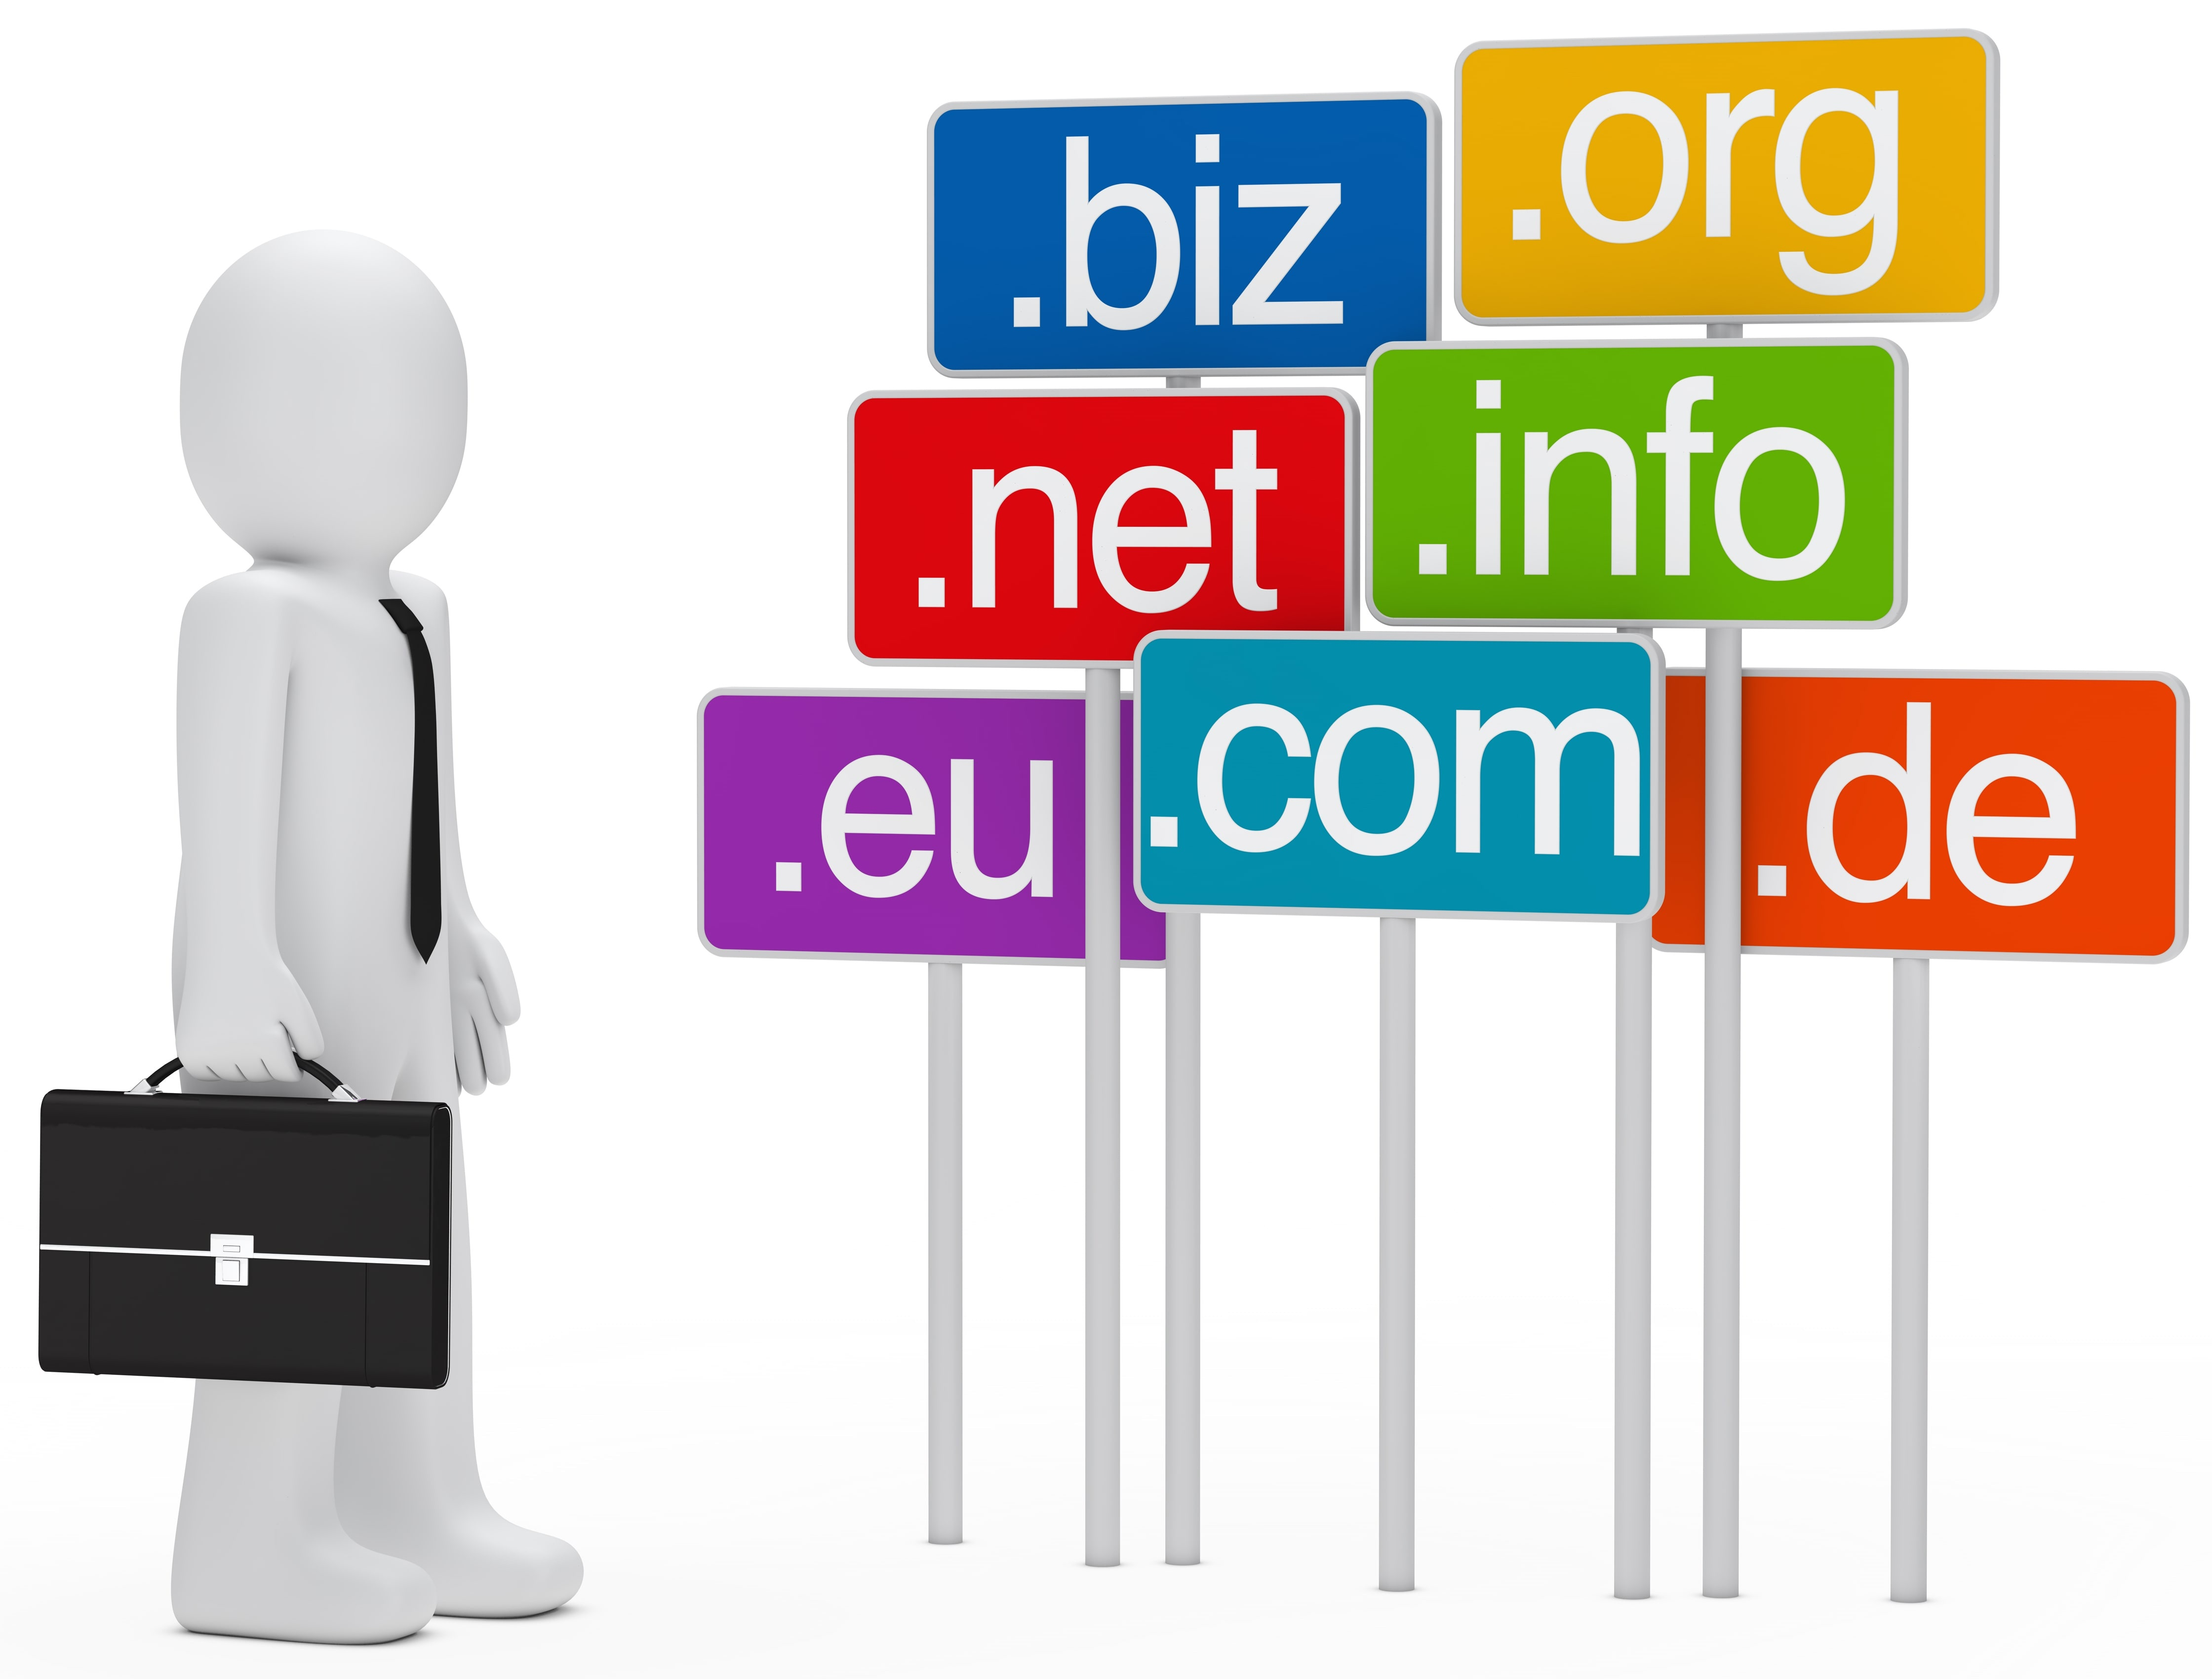 what does domain name mean? - quora